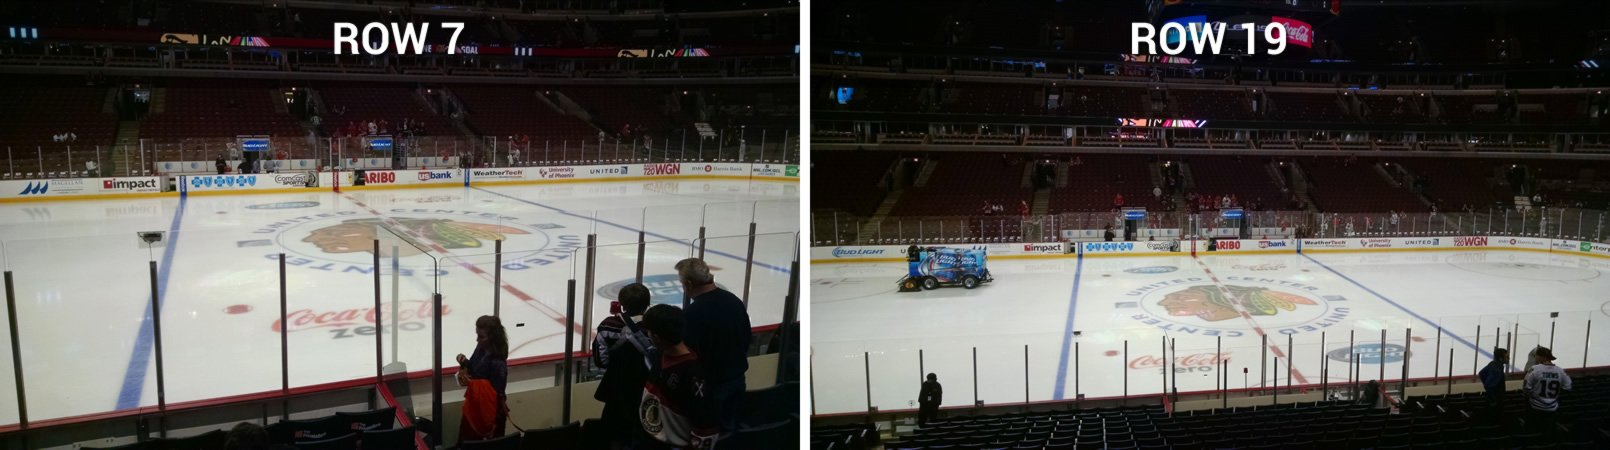 What are the best seats at a hockey games? - Quora